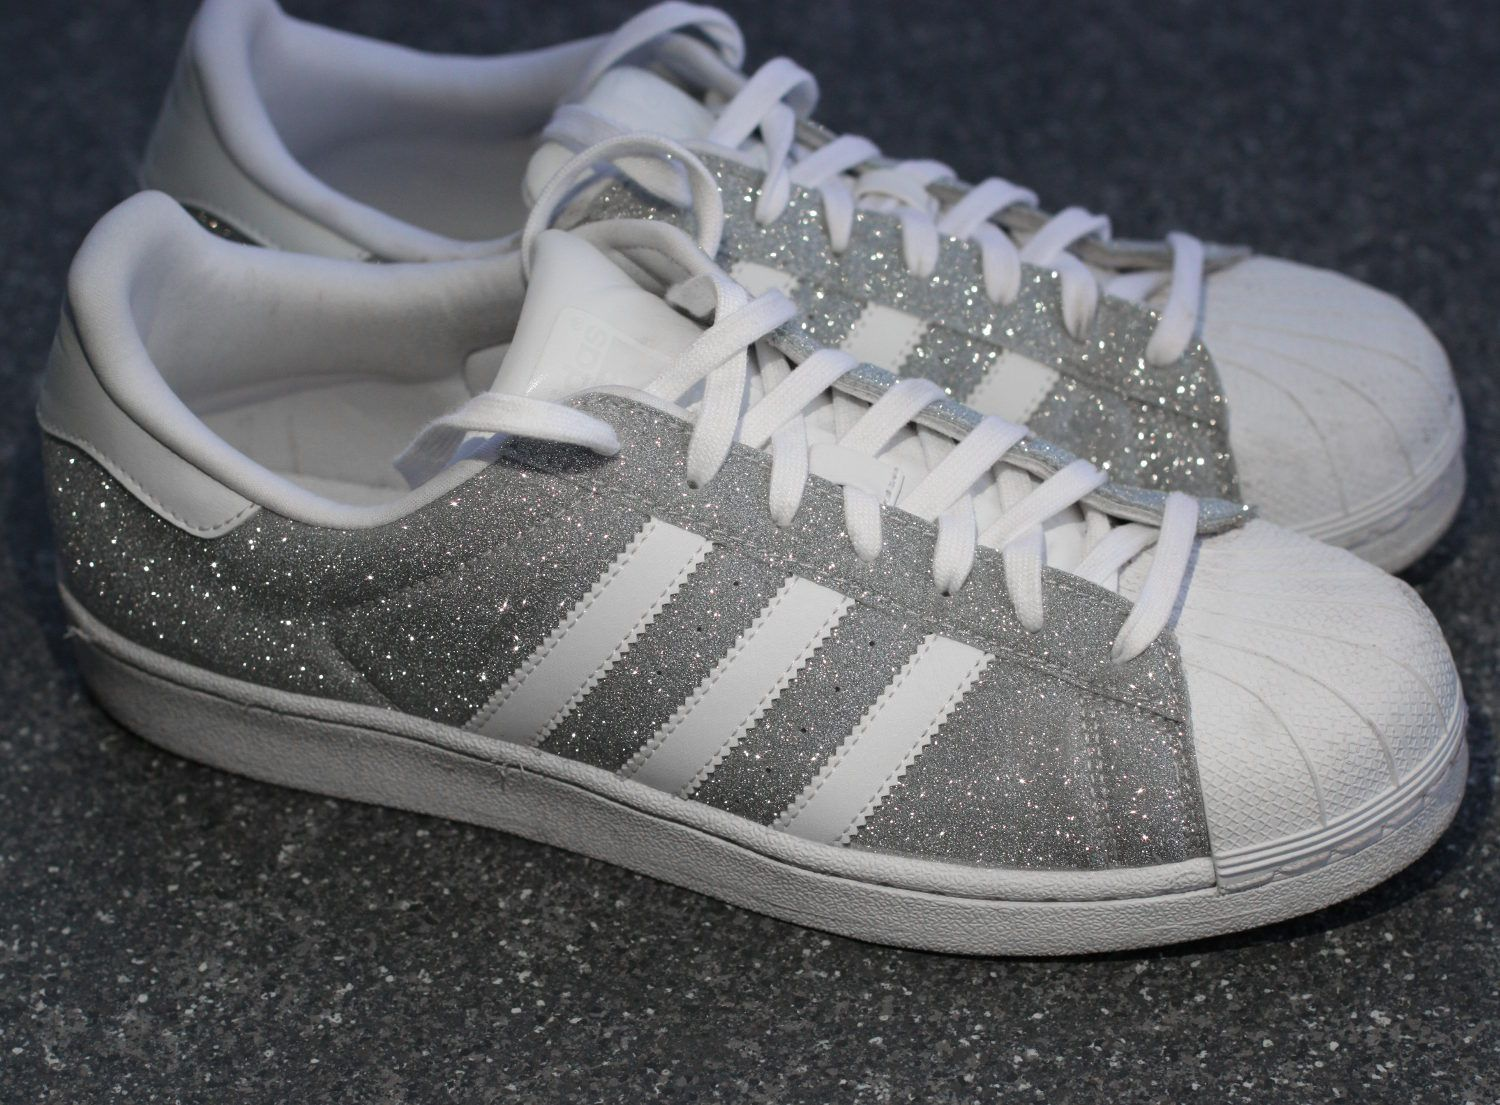 adidas superstar sneakers in silber glitzer silver glitter metallic obsession sneakers. Black Bedroom Furniture Sets. Home Design Ideas